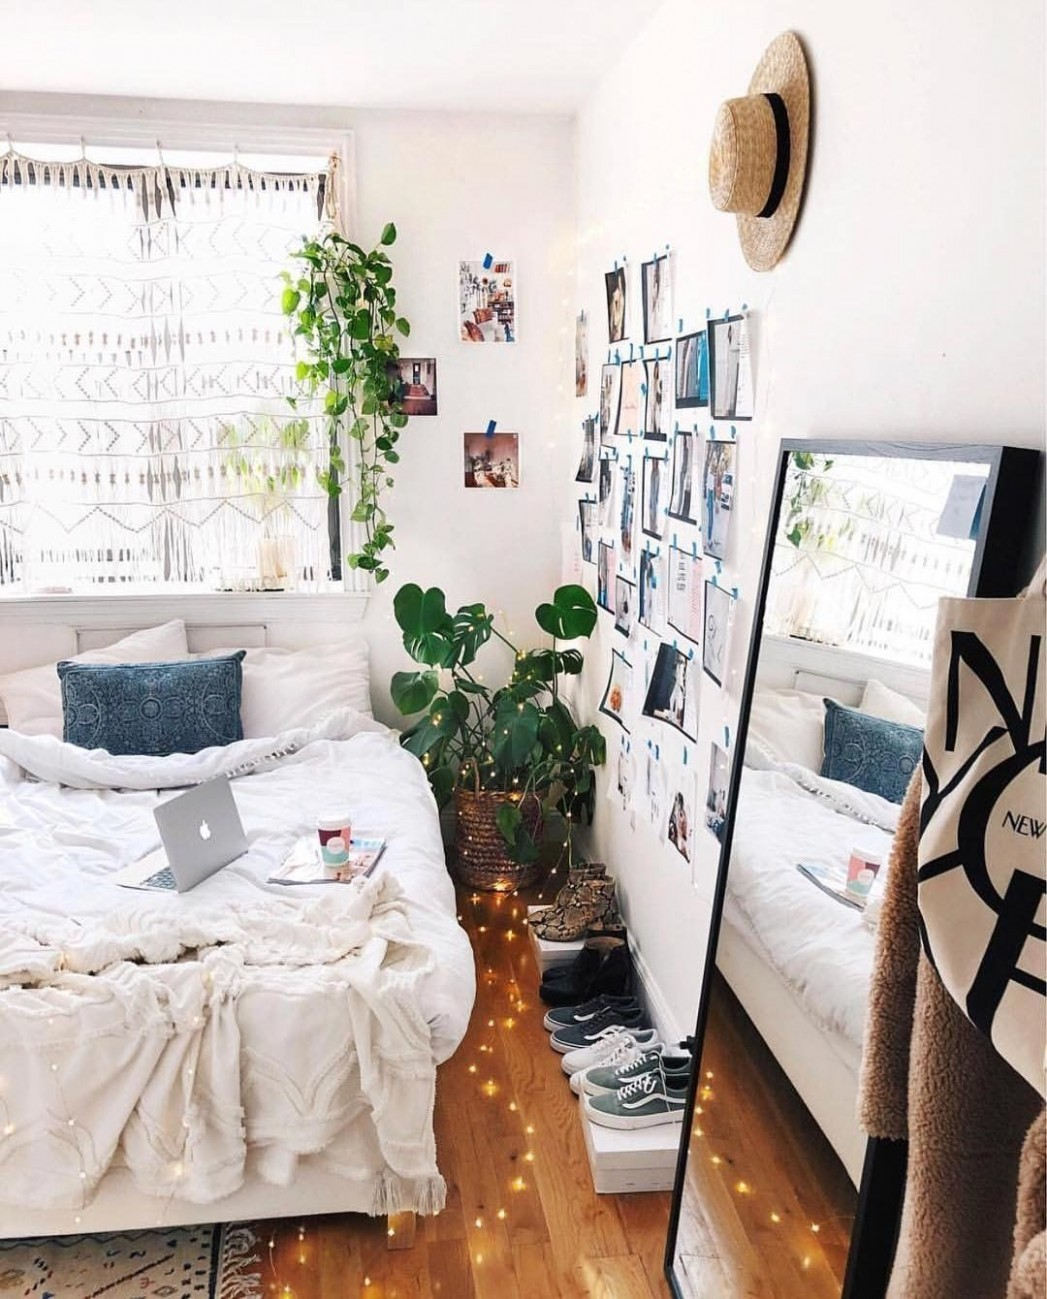 11 Urban Outfitters Bedroom Ideas - Homiku